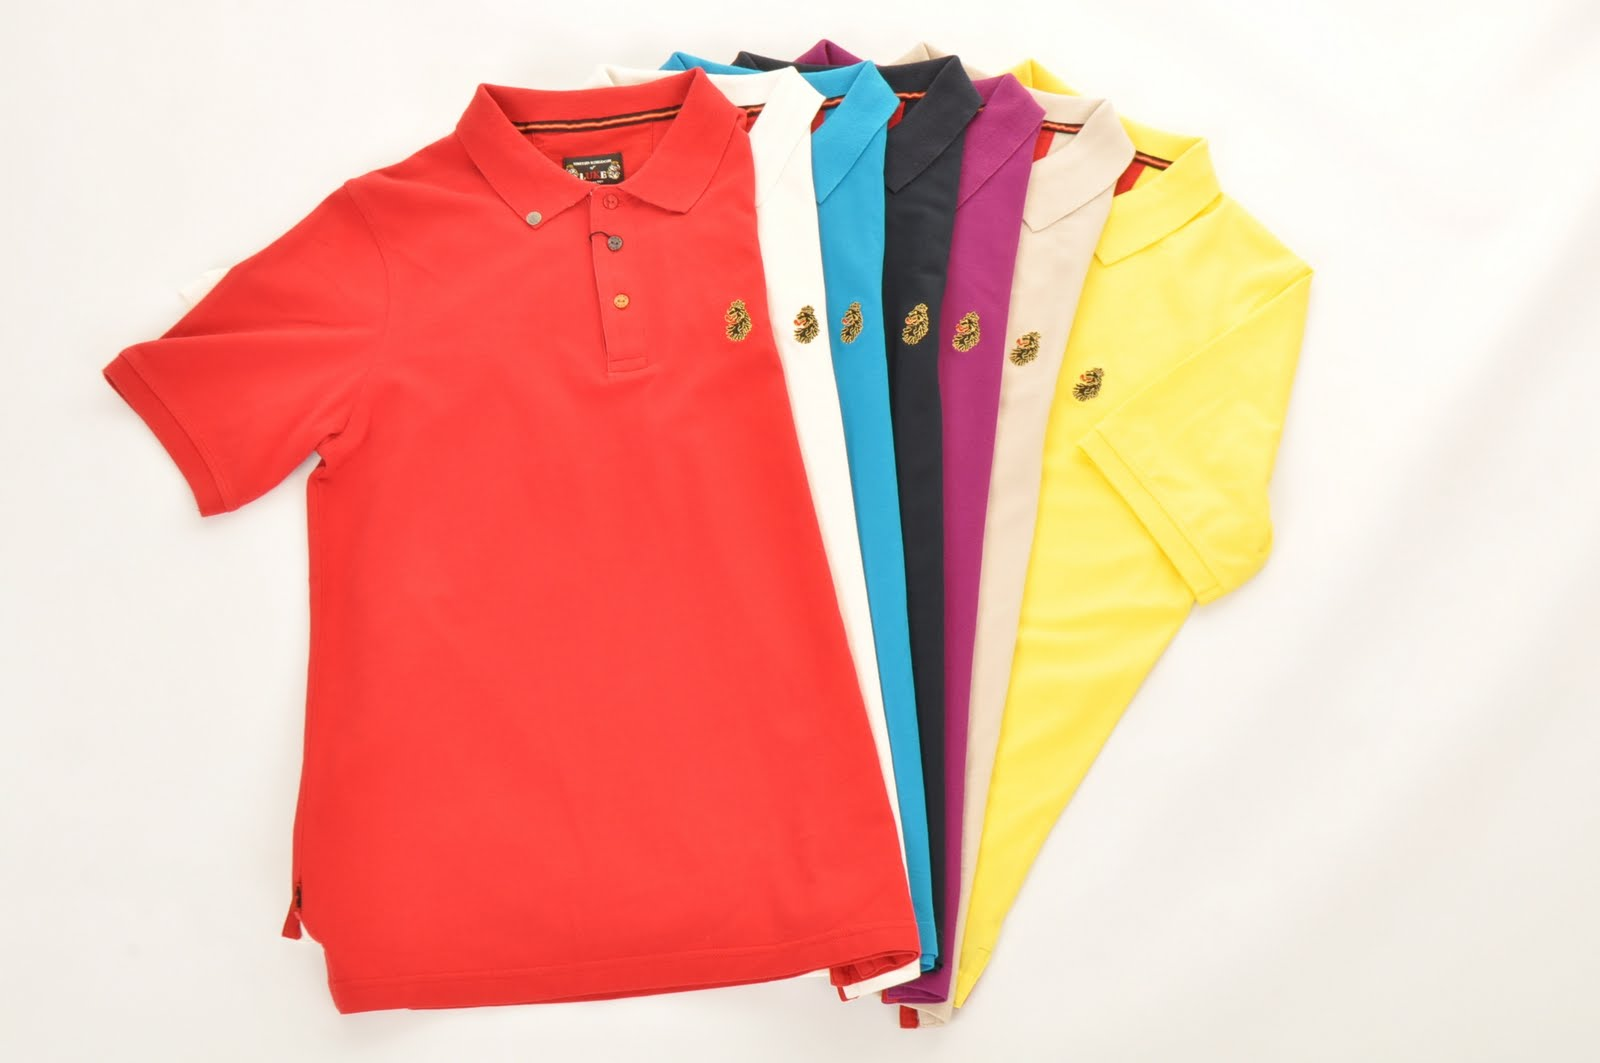 123a8eaad This summer the heavily pushed trend is going to be the smart polo t shirt,  with shorts, jeans or trousers. This smart casual summer look can be found  in ...